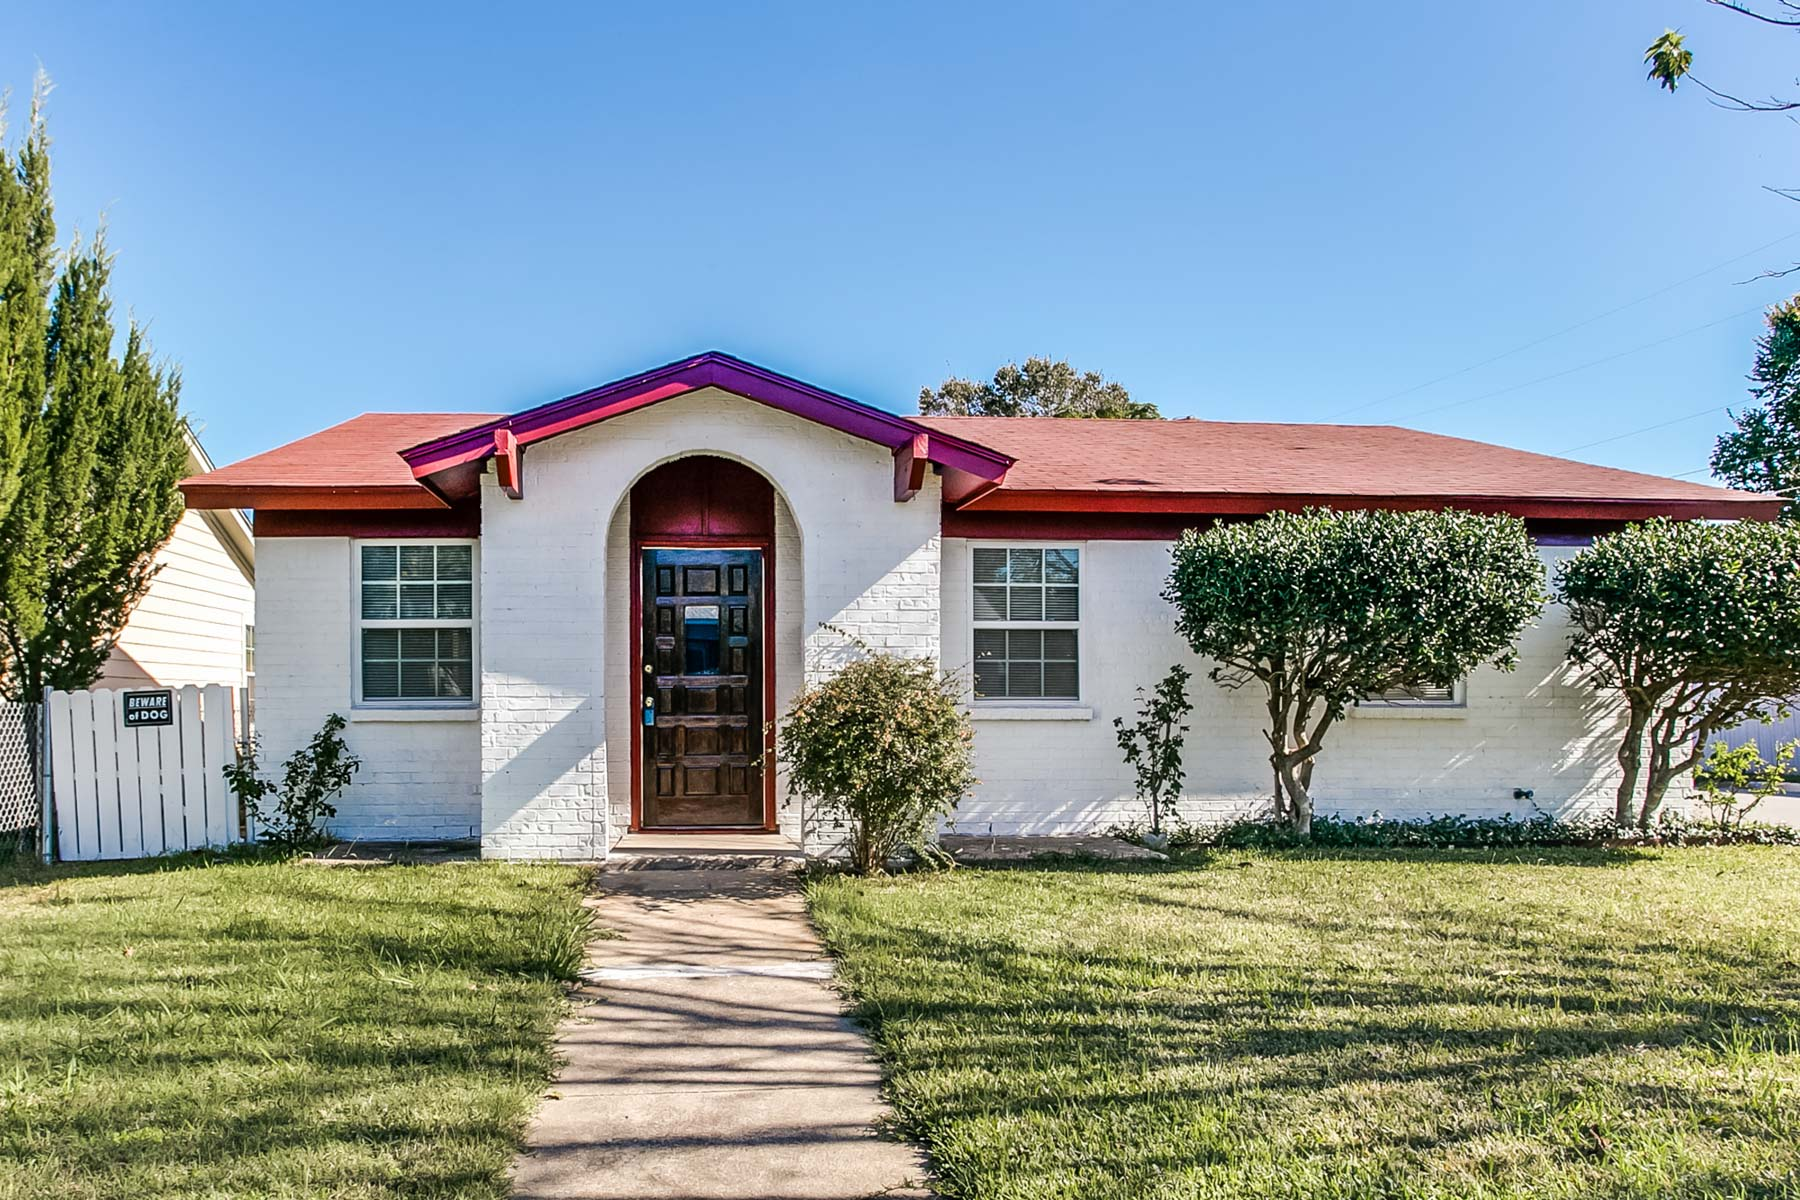 Villa per Vendita alle ore 3643 College Ave, Fort Worth Fort Worth, Texas, 76110 Stati Uniti